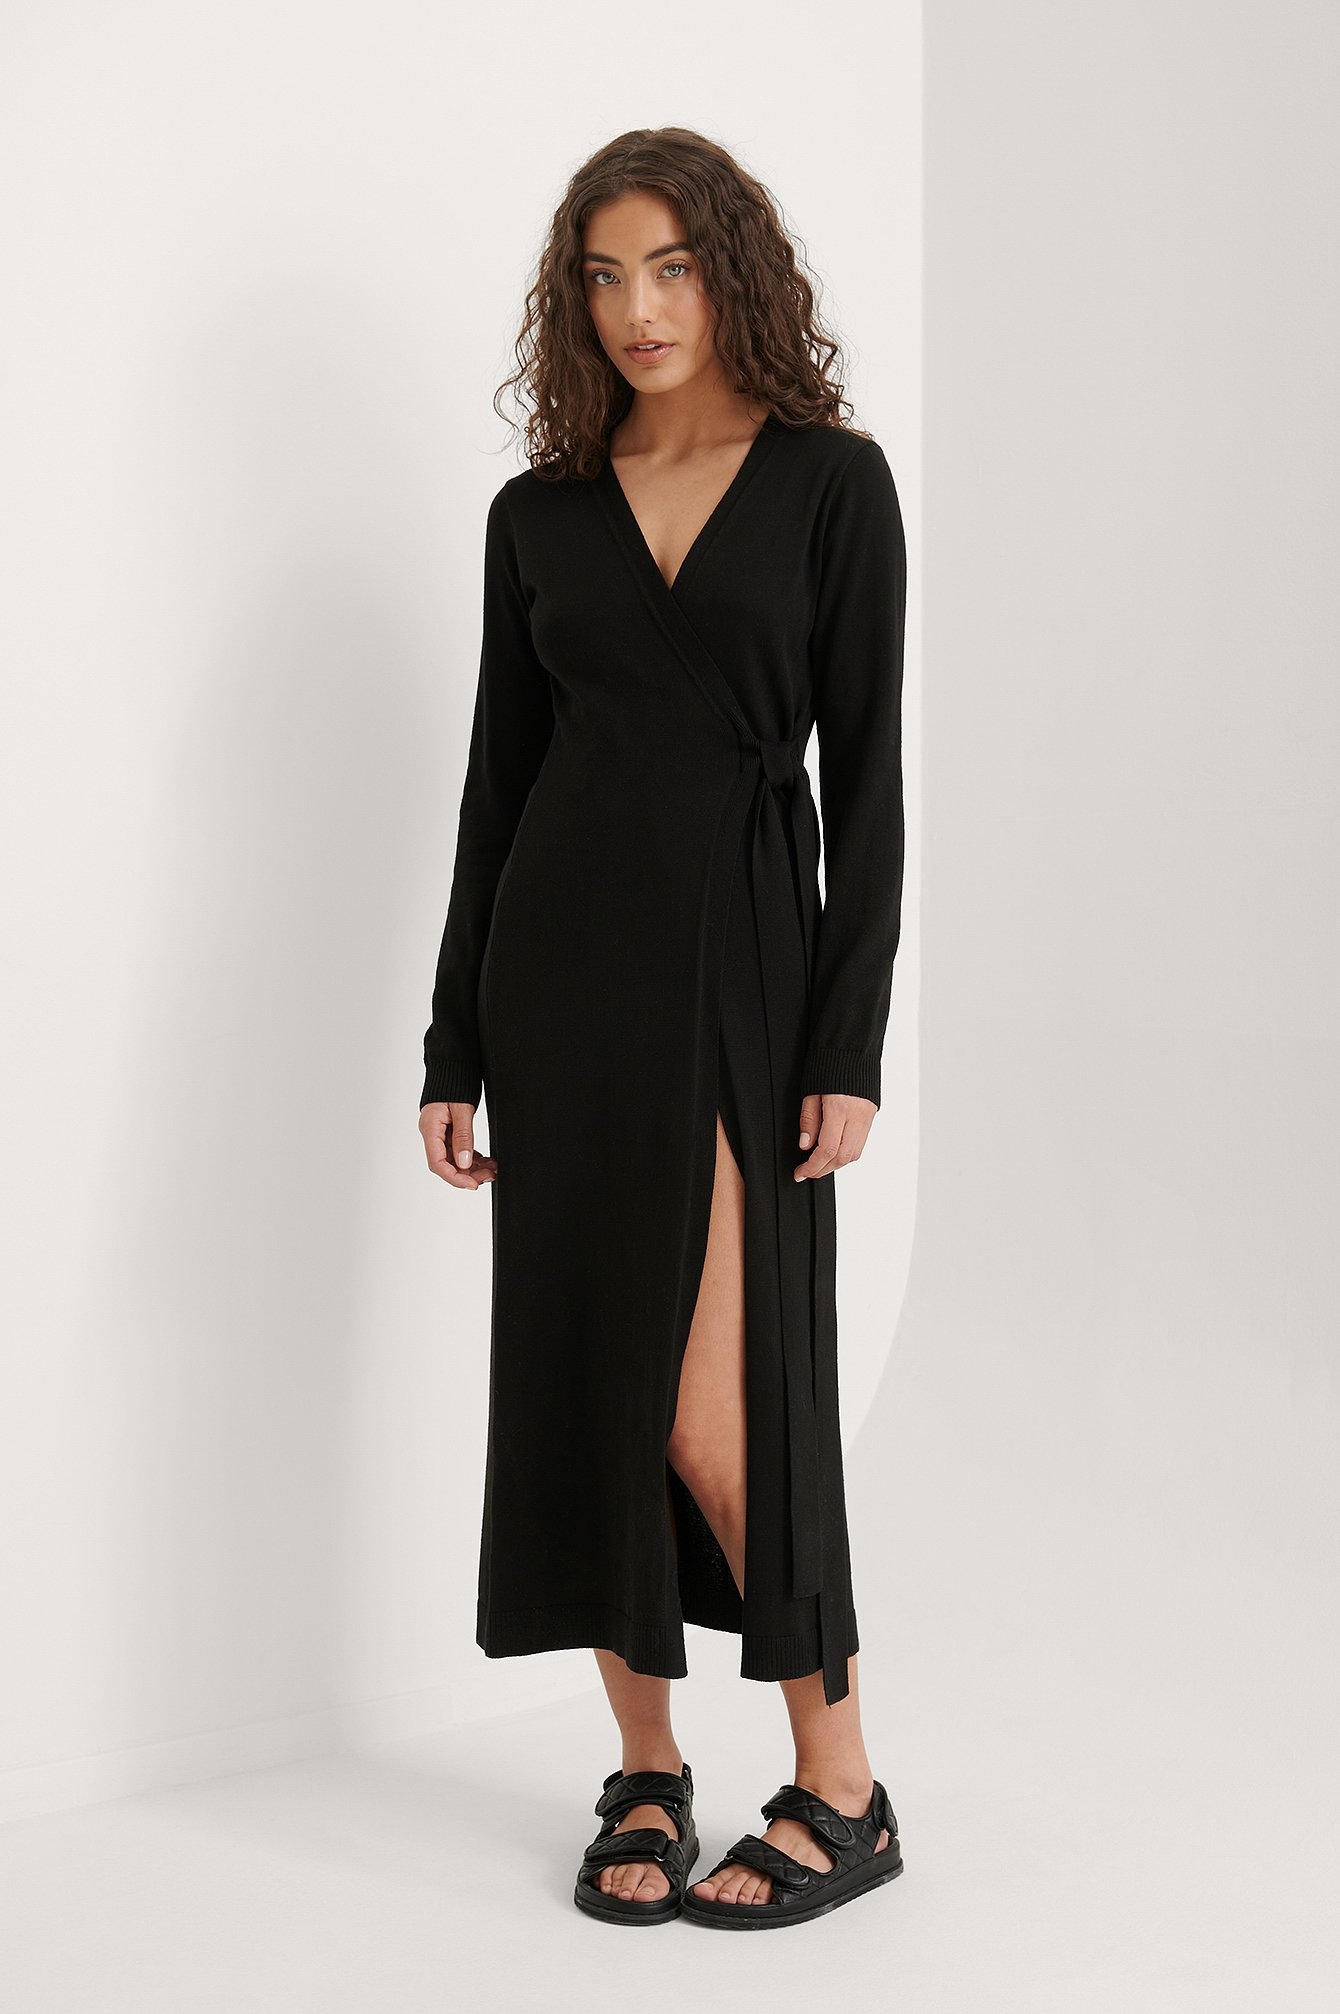 Black Knitted Robe Dress